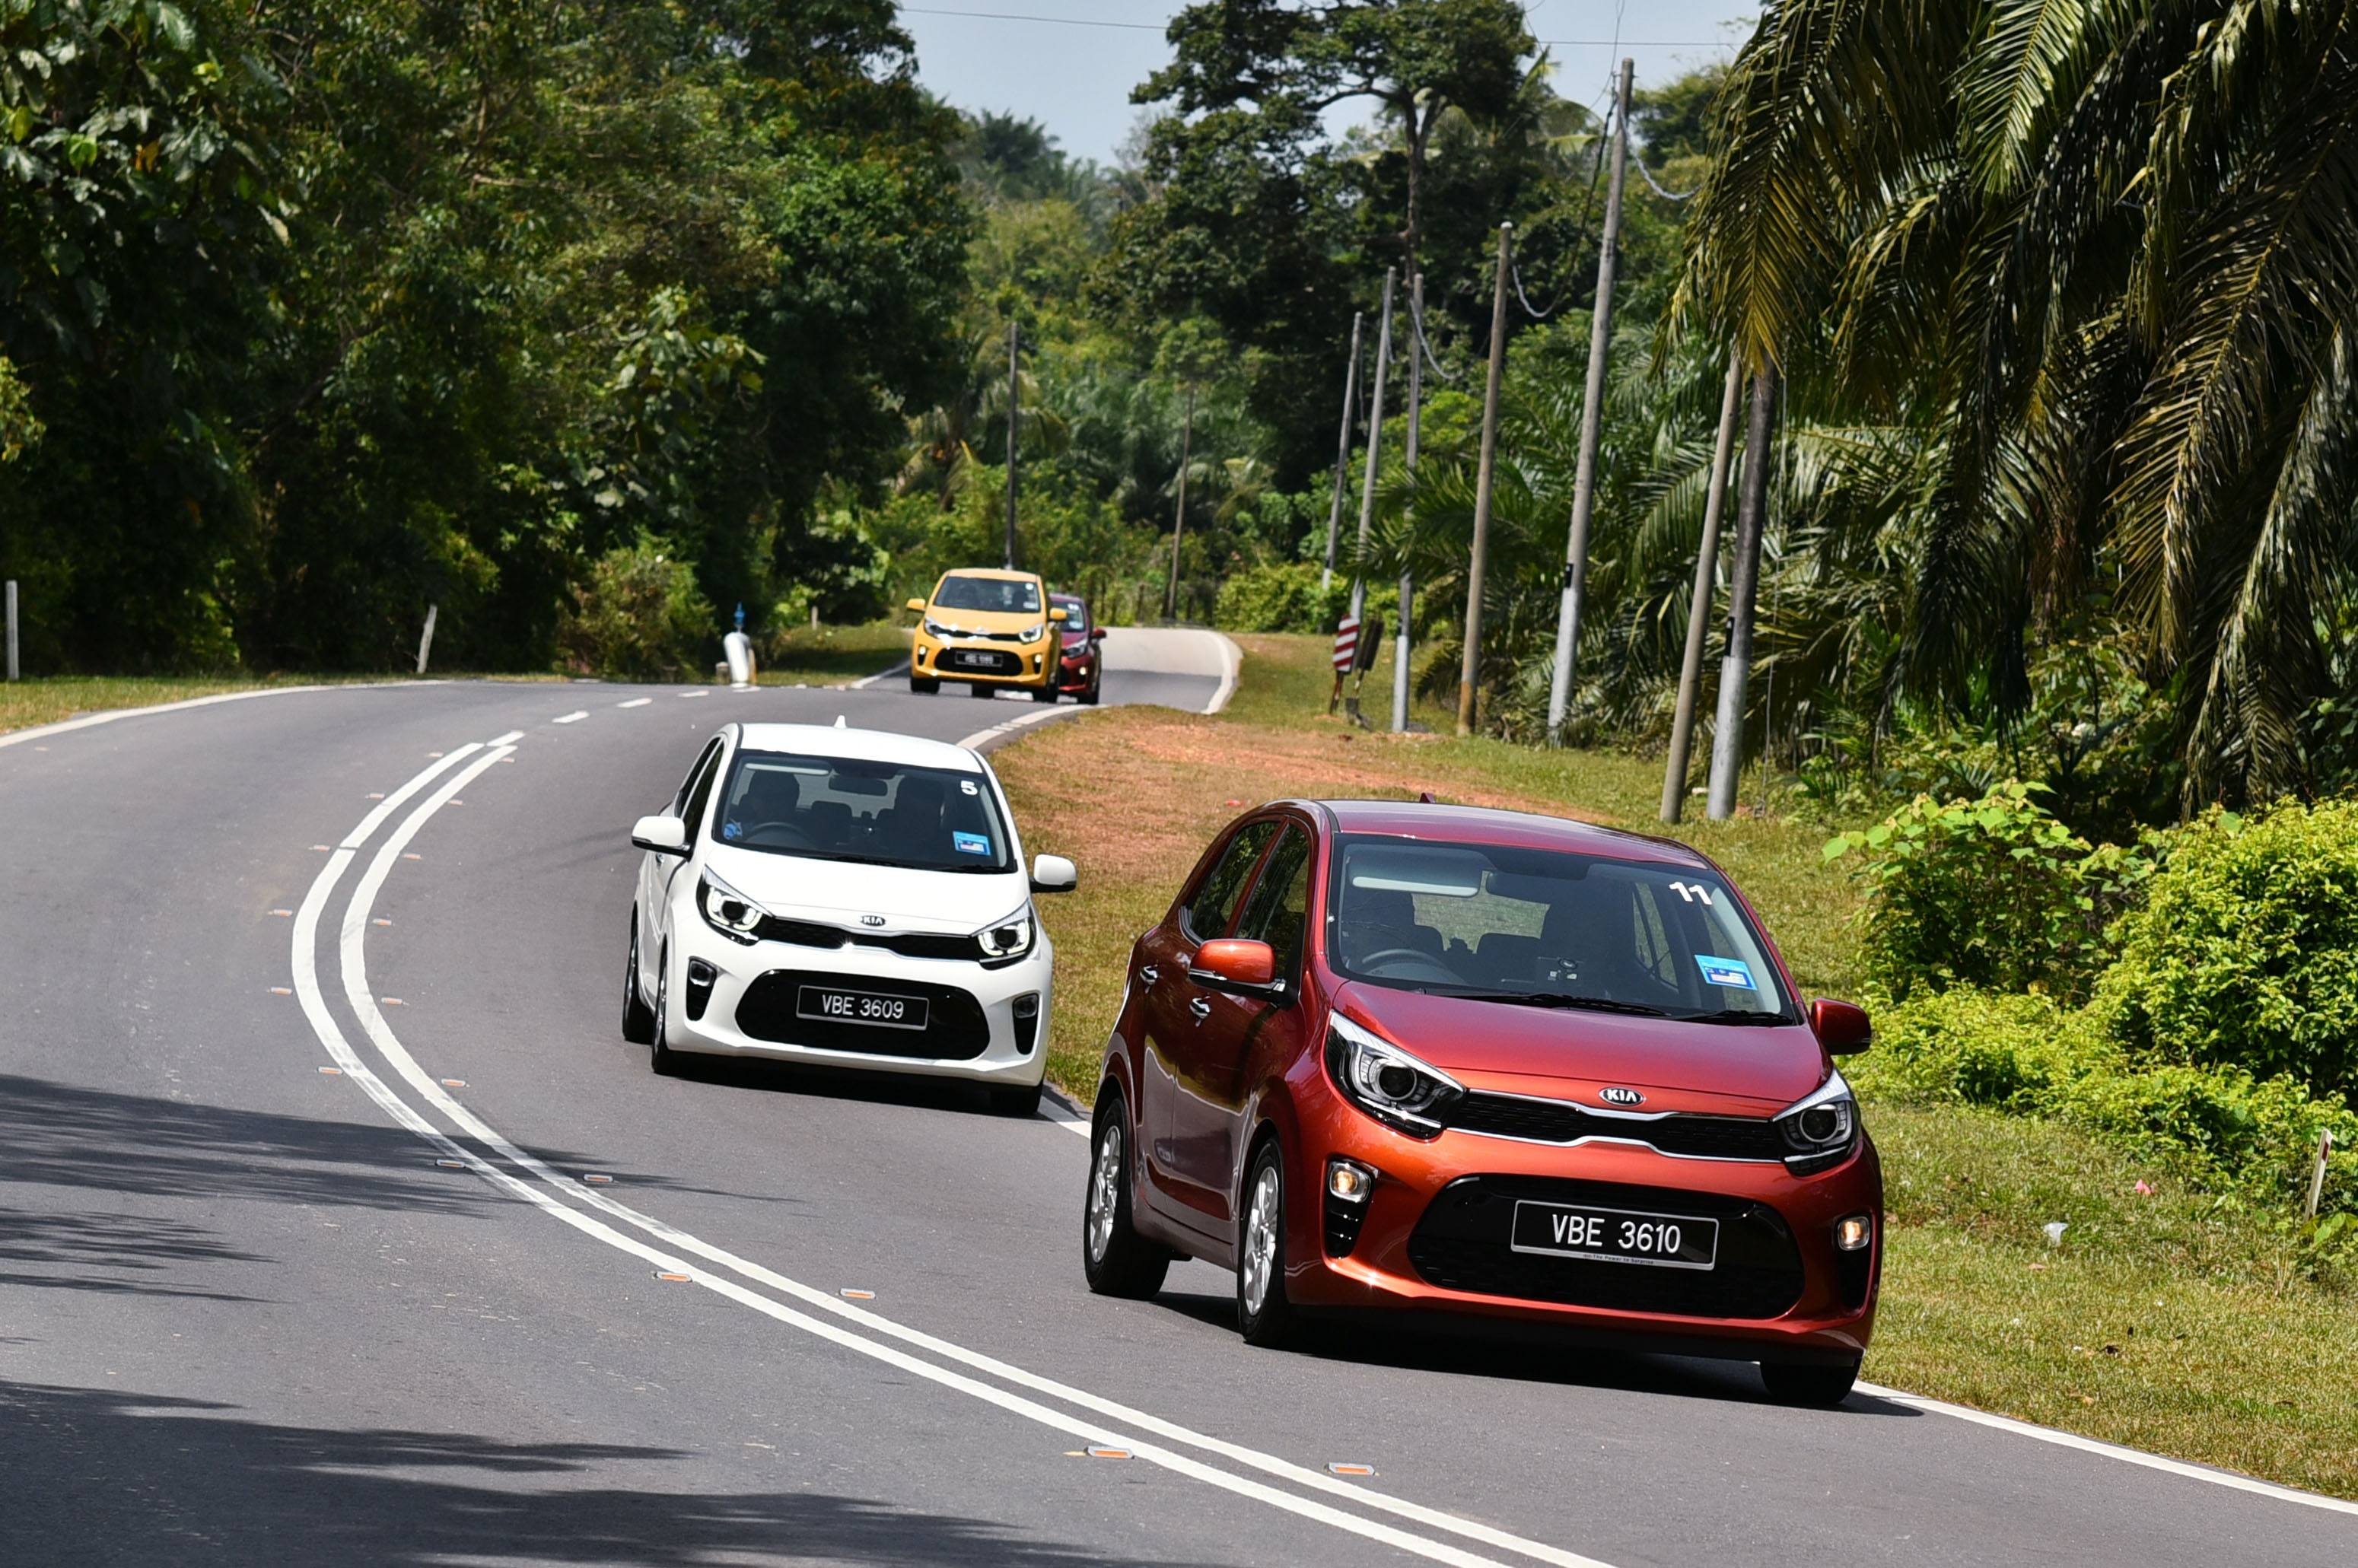 REVIEWED: Kia Picanto 1 2 - Why It's The BEST Value Car Out